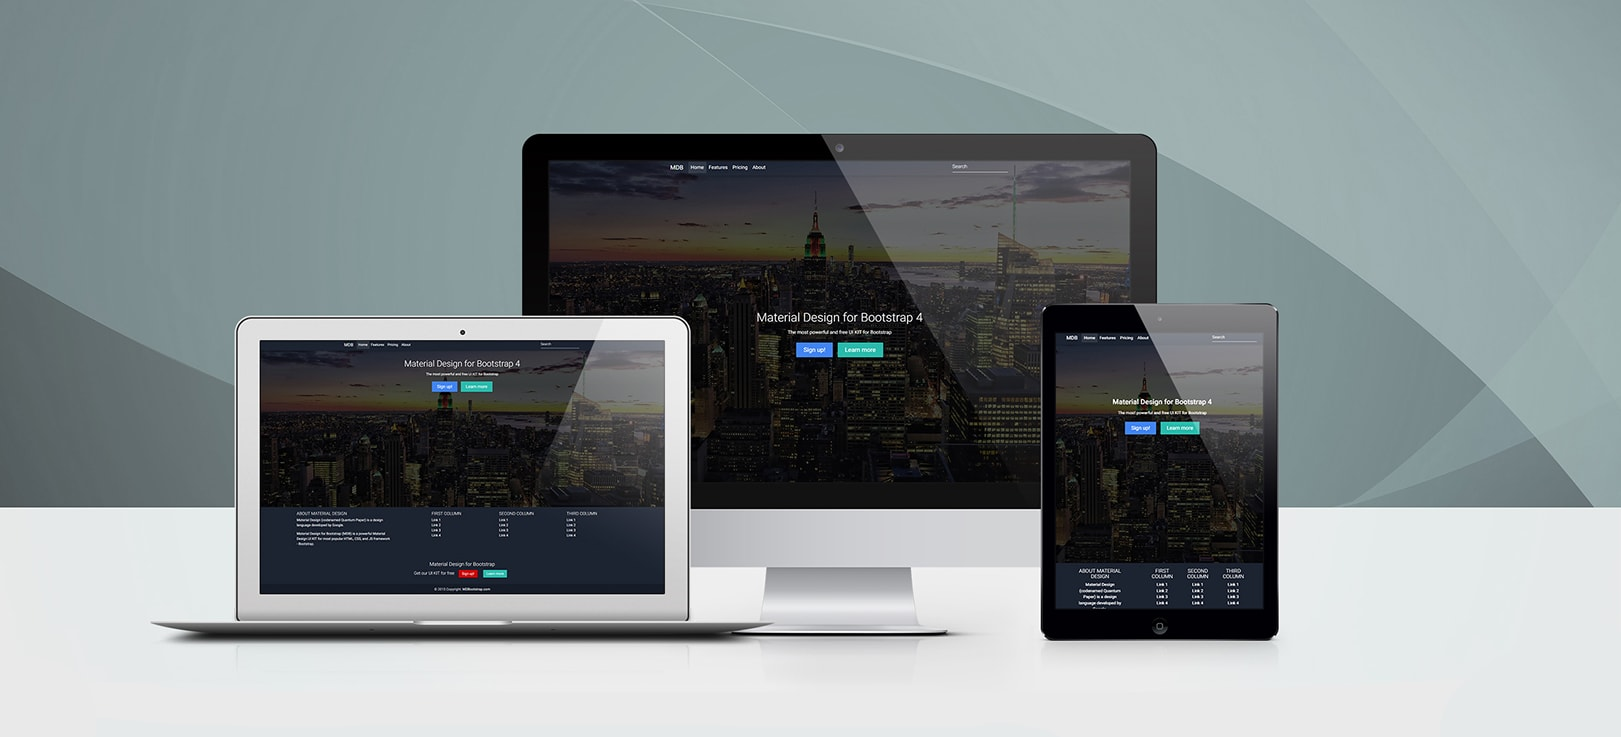 React Background Image - Bootstrap 4 & Material Design